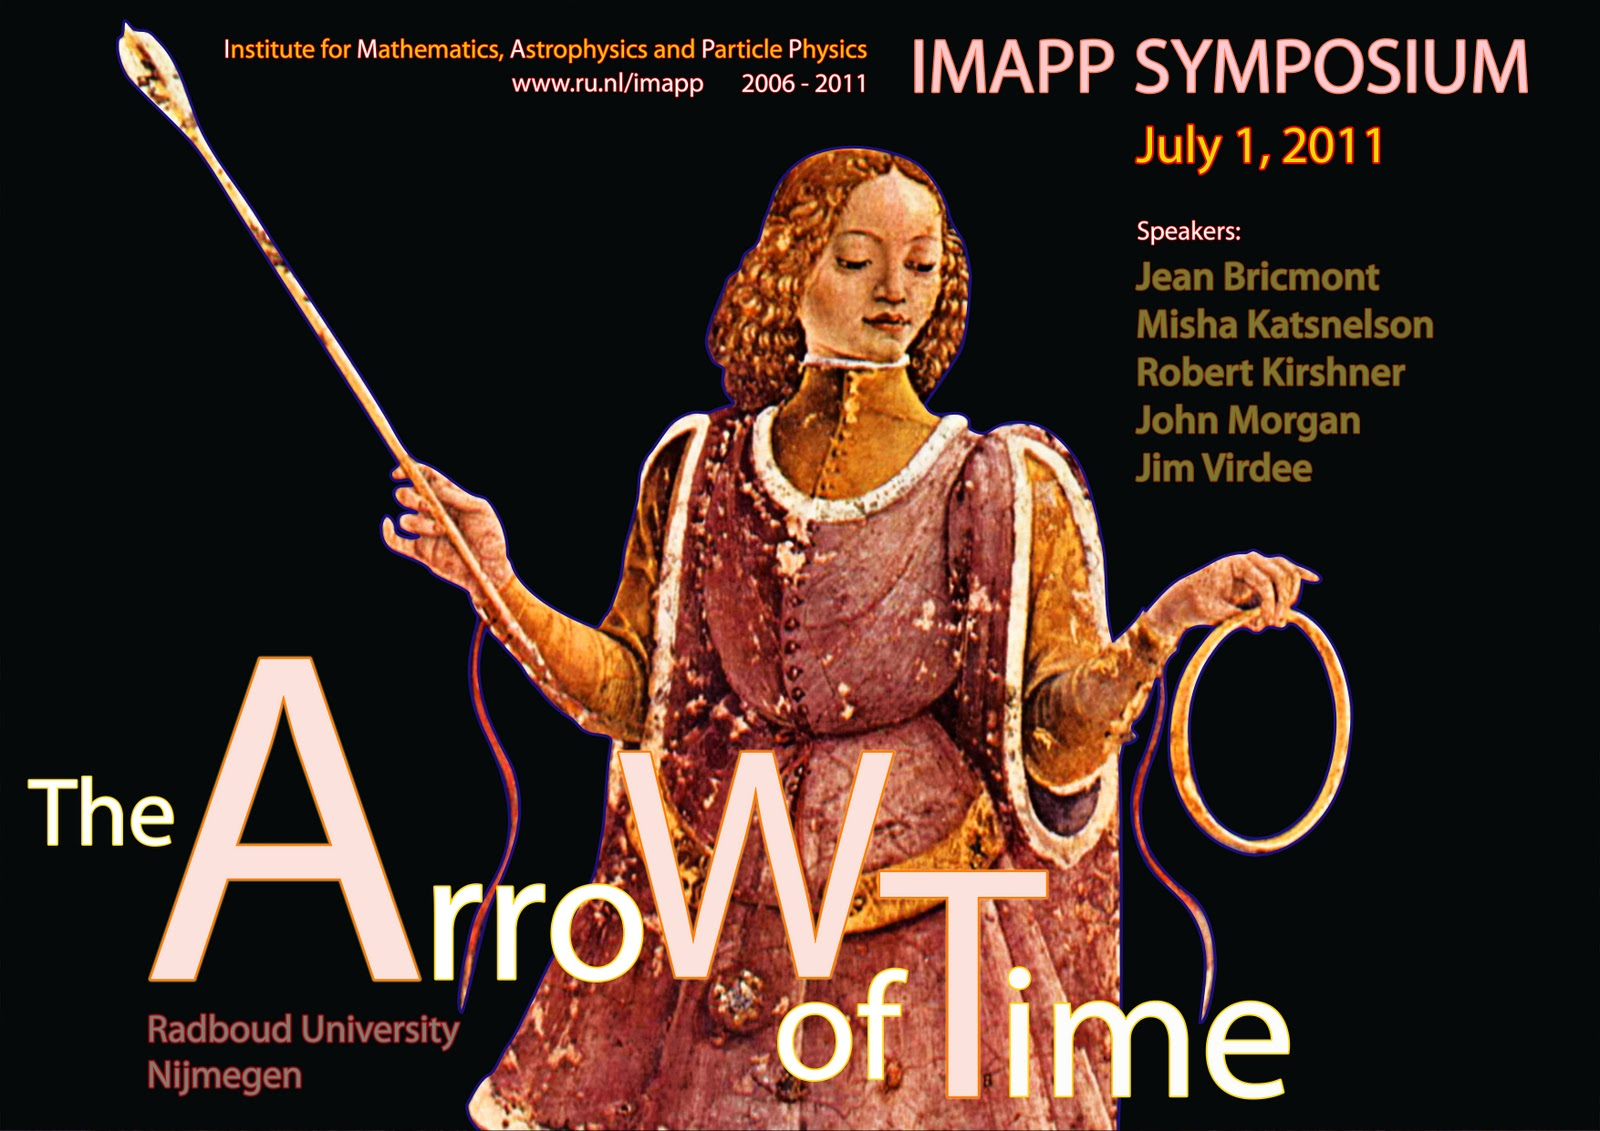 arrow of time symposium 2011